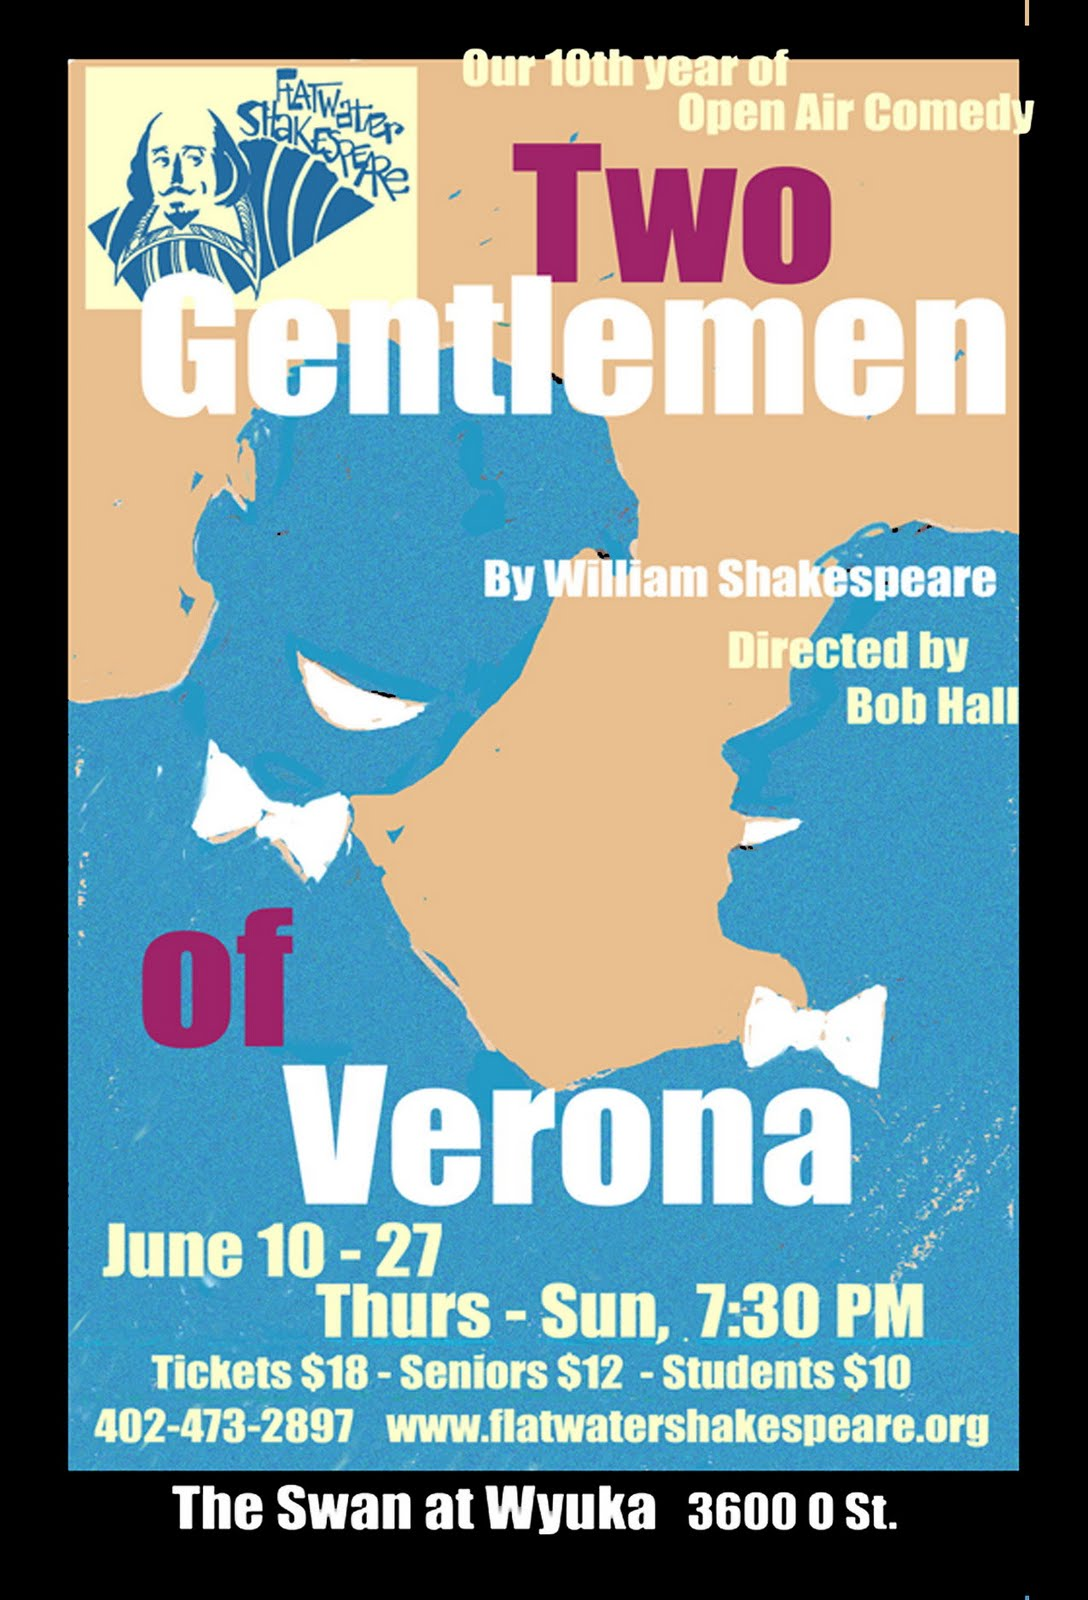 flatwater shakespeare s blog news 2010 ten years of open air comedy flatwater shakespeare presents the two gentlemen of verona